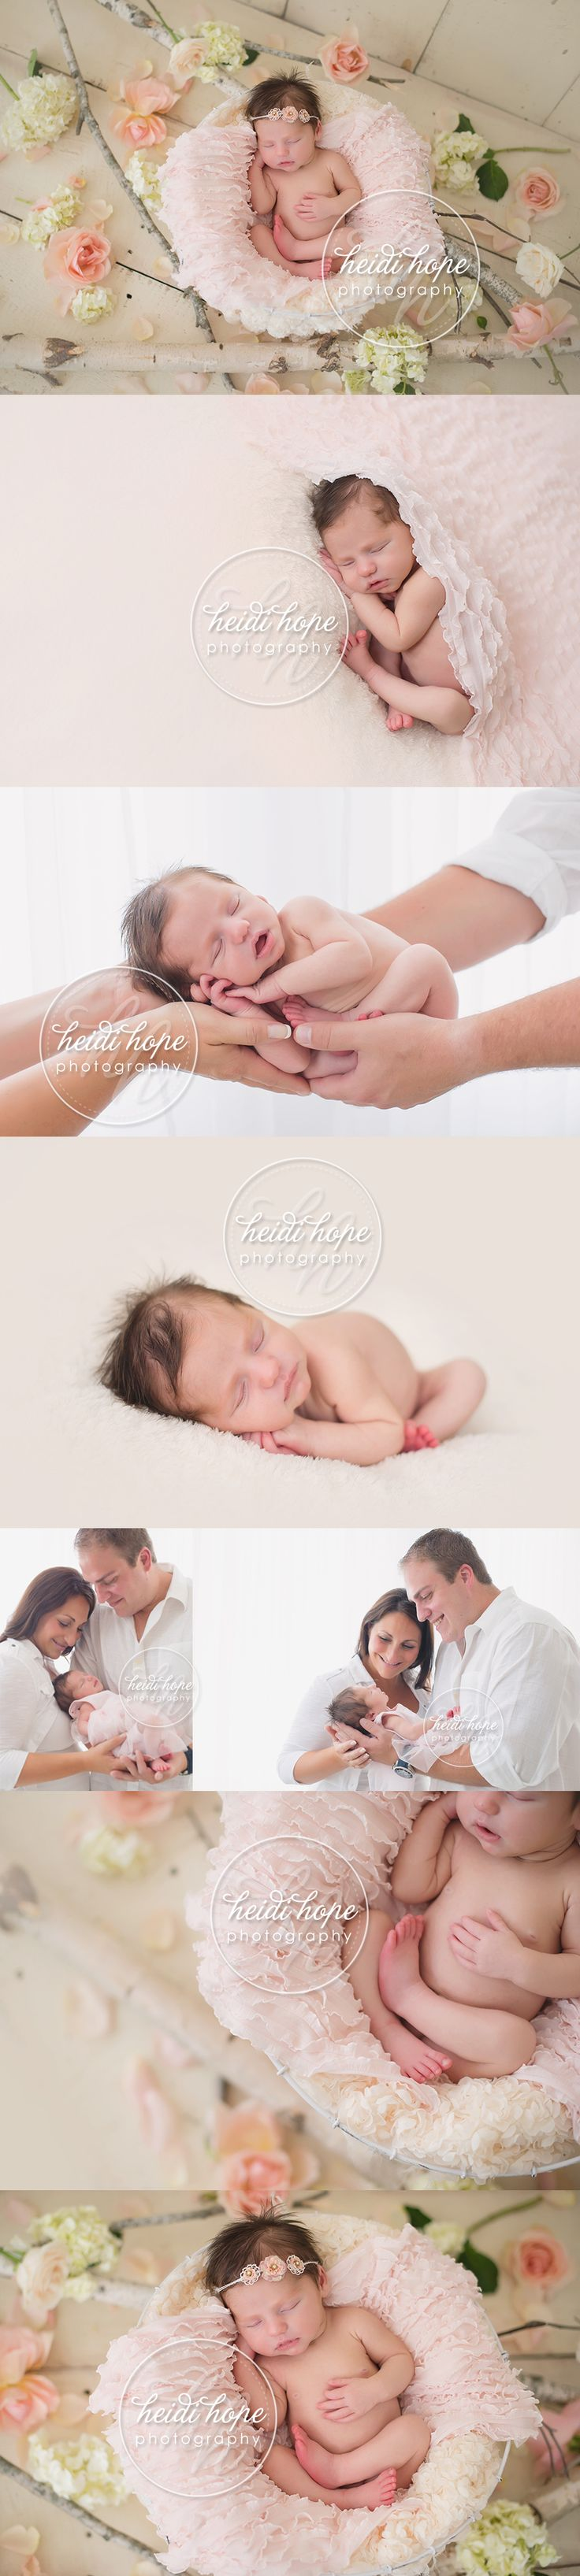 newborn baby girl with pink flowers. love the light colors and flowers. Mostly love just the photos of the newborn girl only